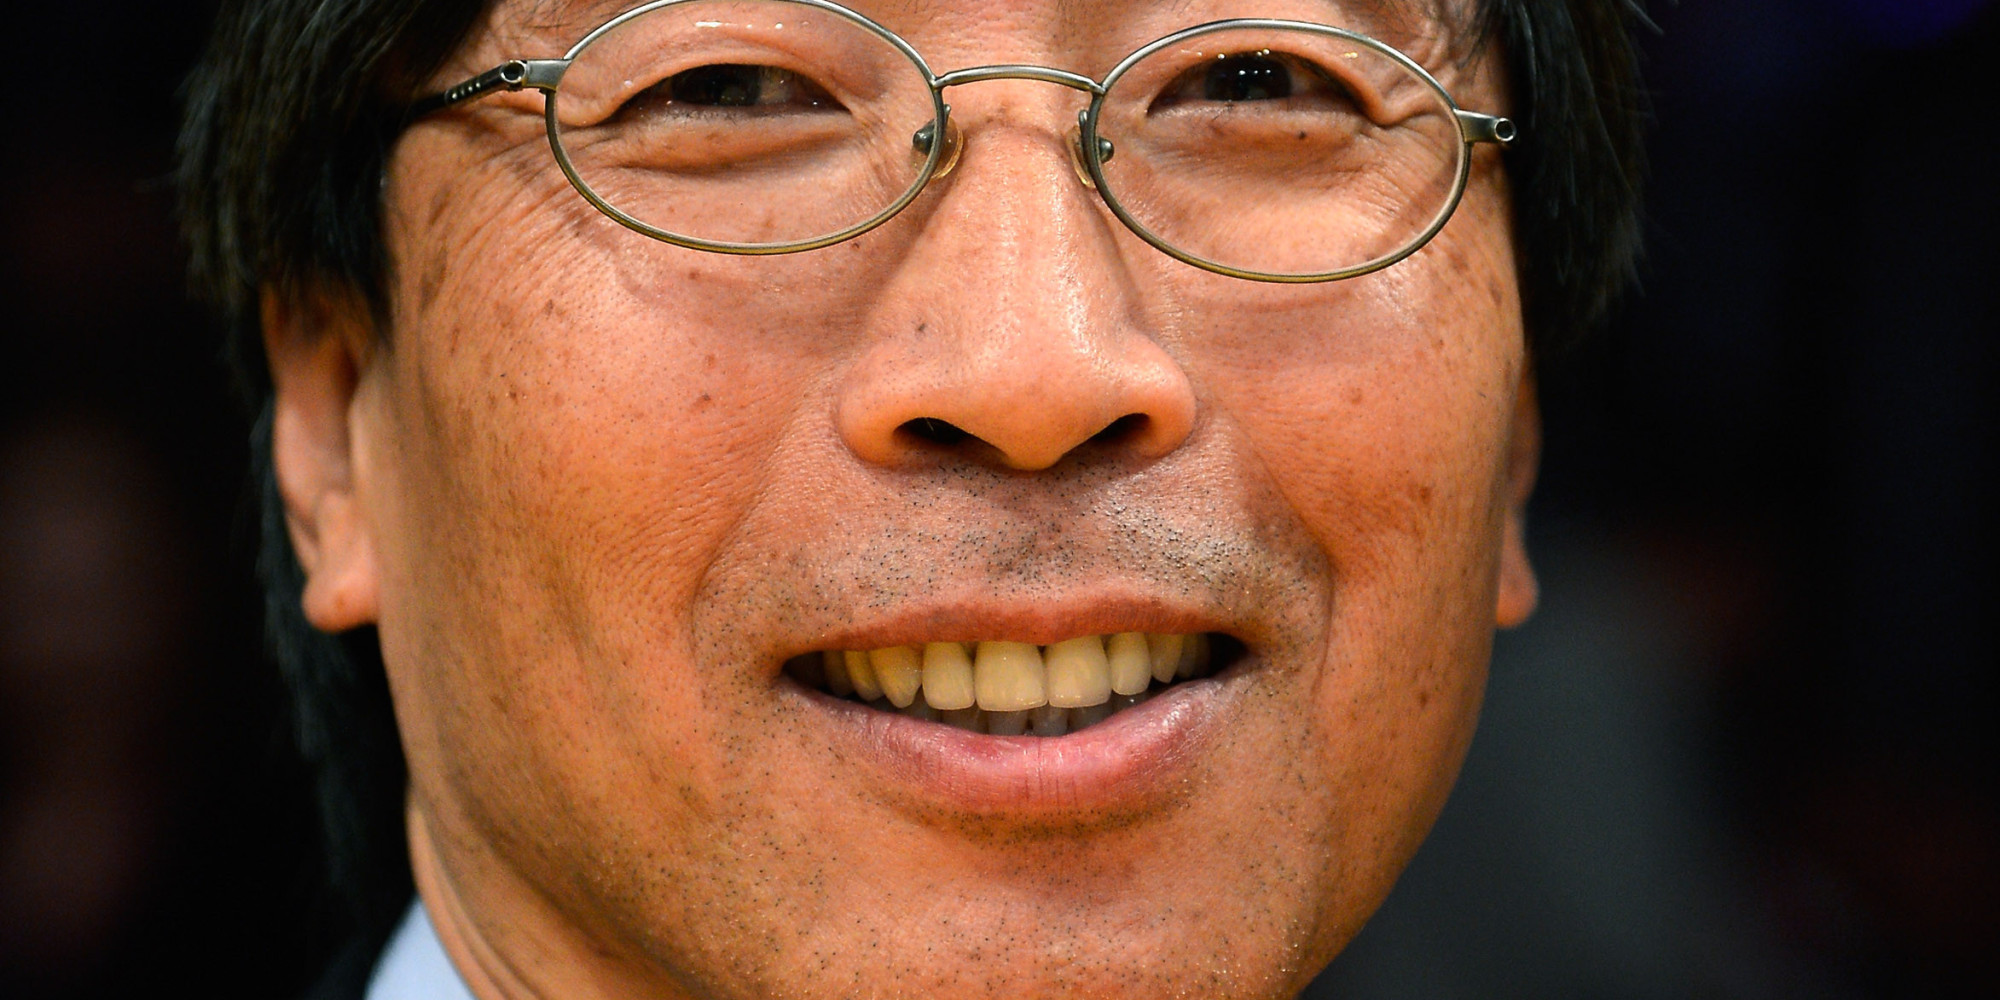 meet patrick soon shiong the la billionaire reinventing your meet patrick soon shiong the la billionaire reinventing your health care the huffington post